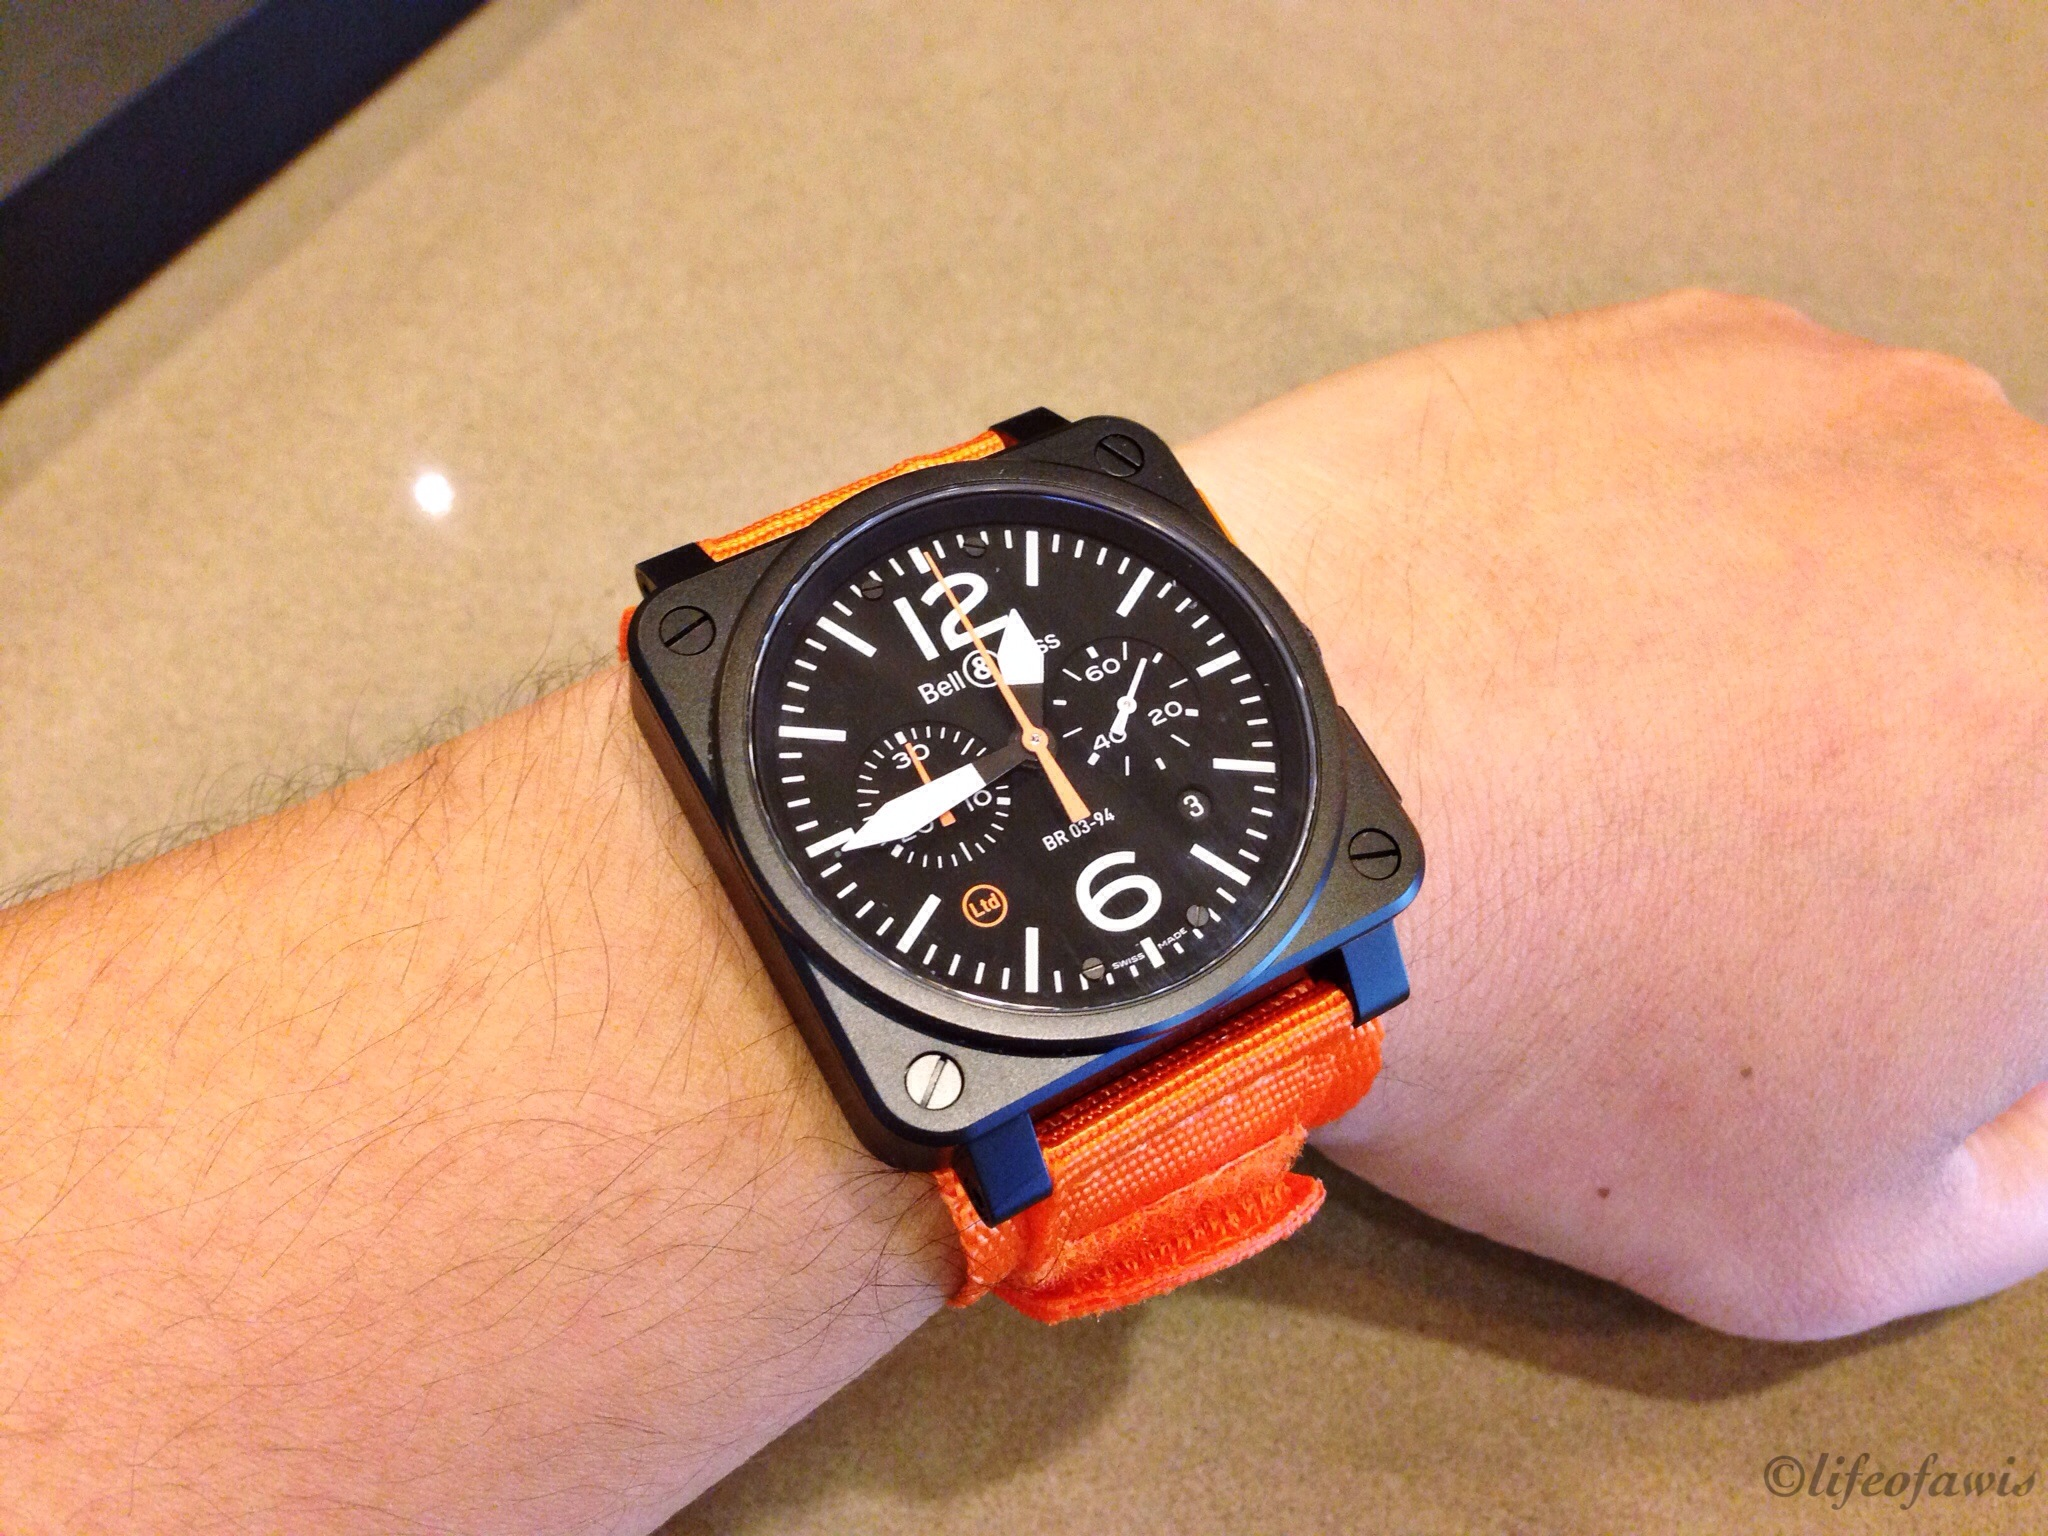 Looks even better on the wrist.